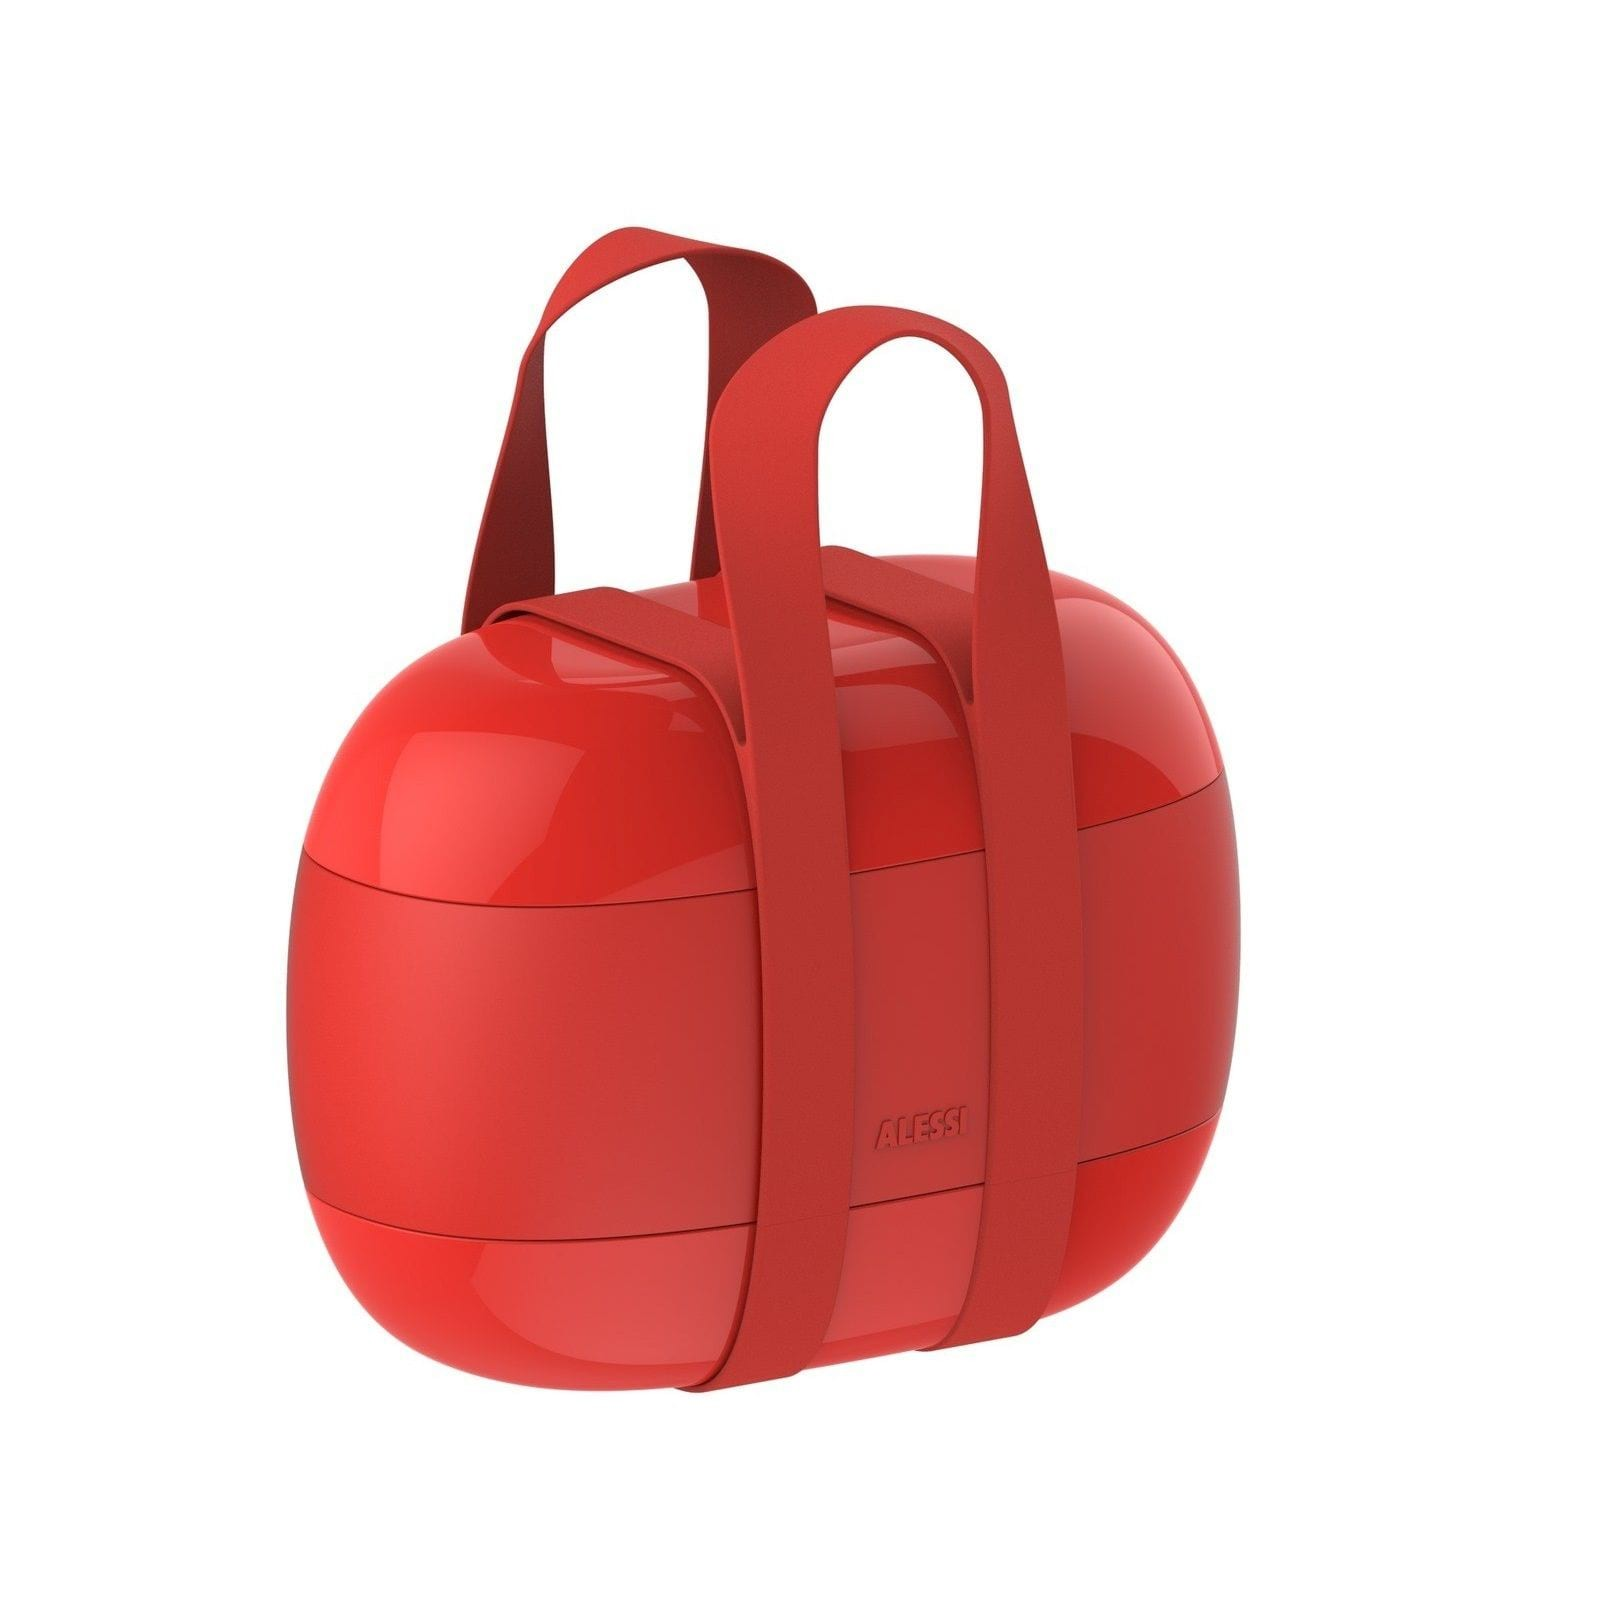 Food à Porter Lunch Box (Red) - Alessi